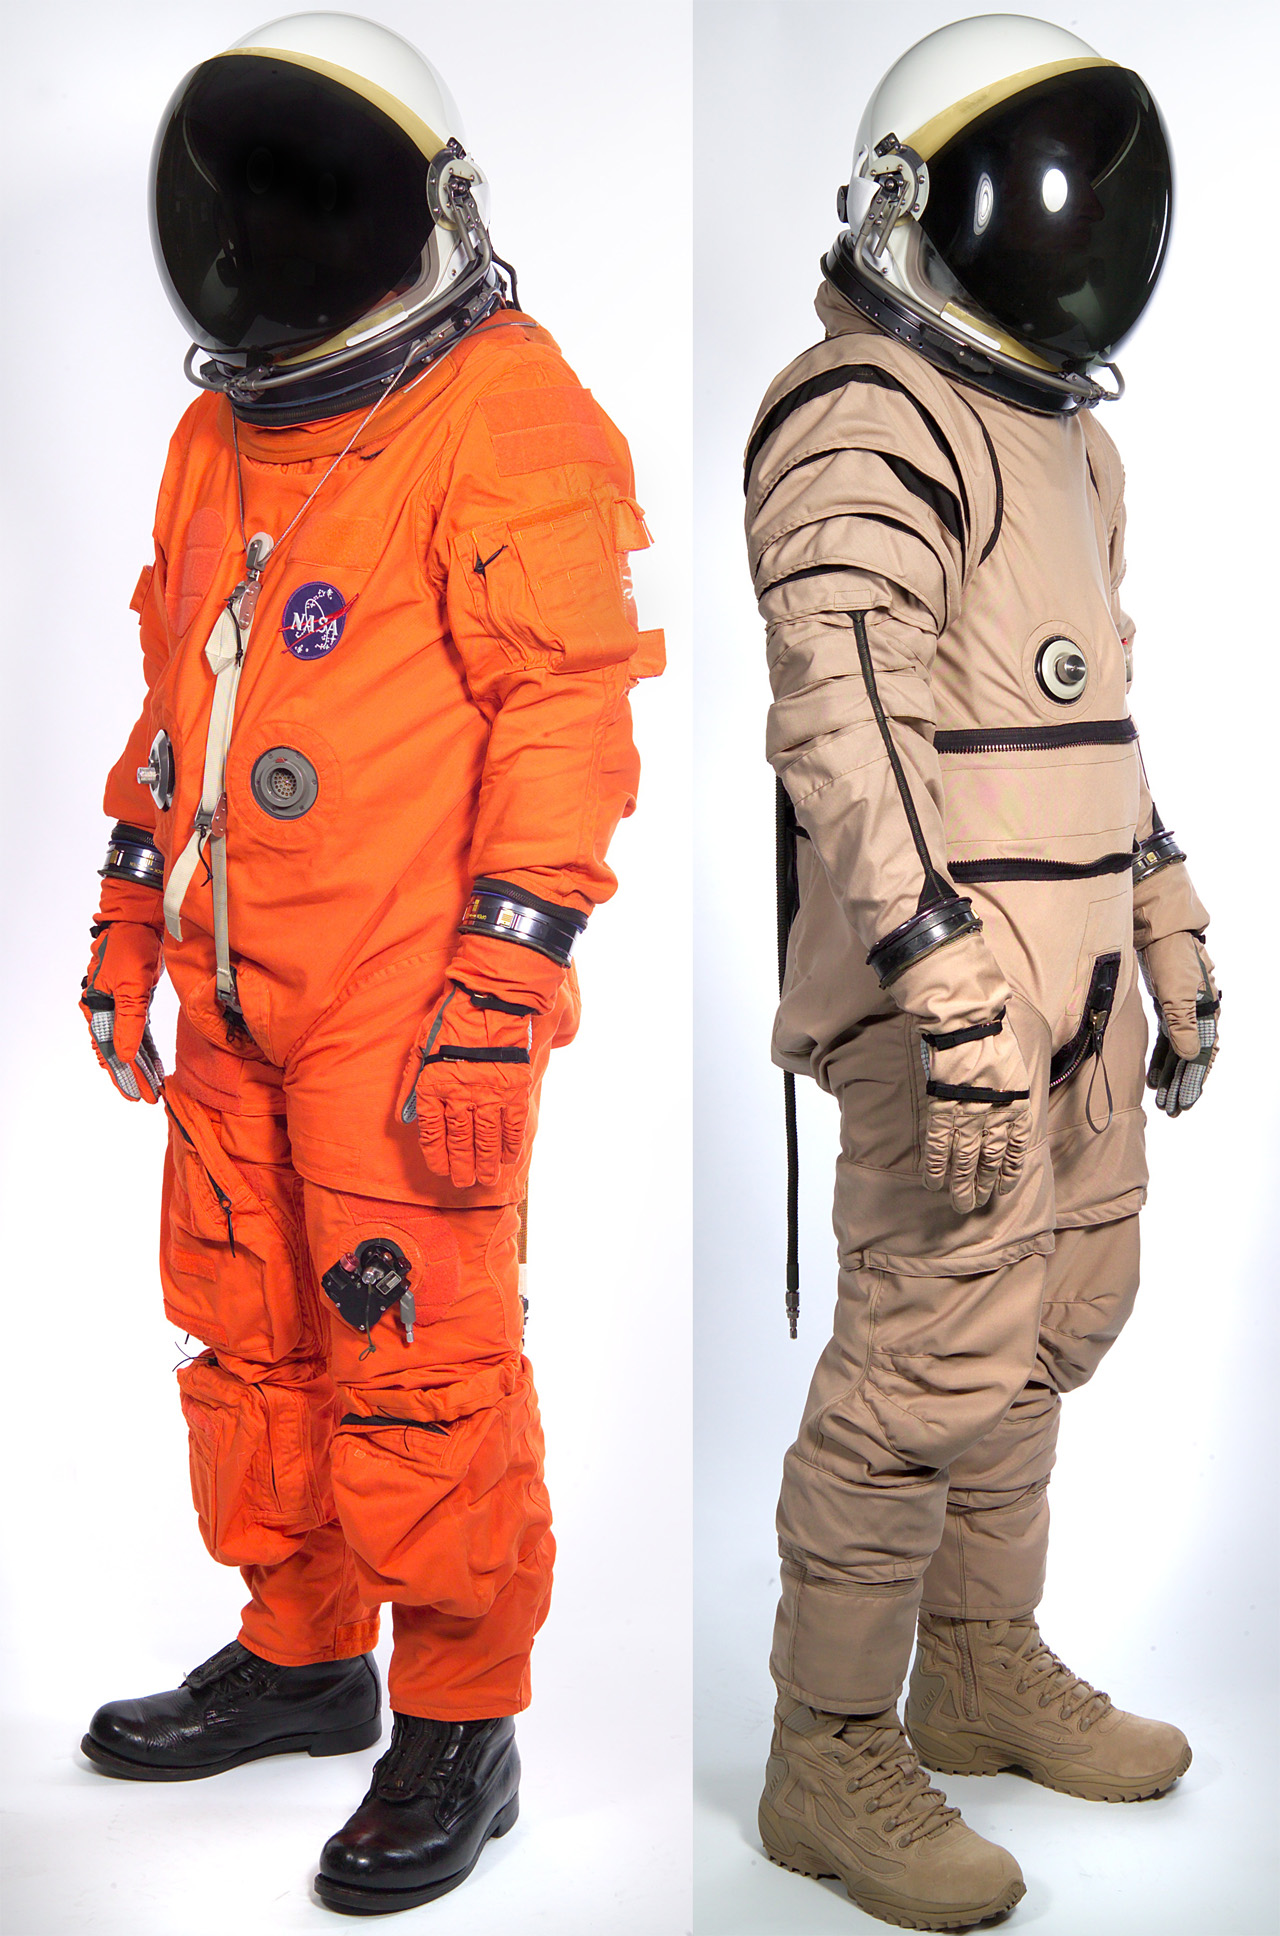 nasa space suit material - photo #41